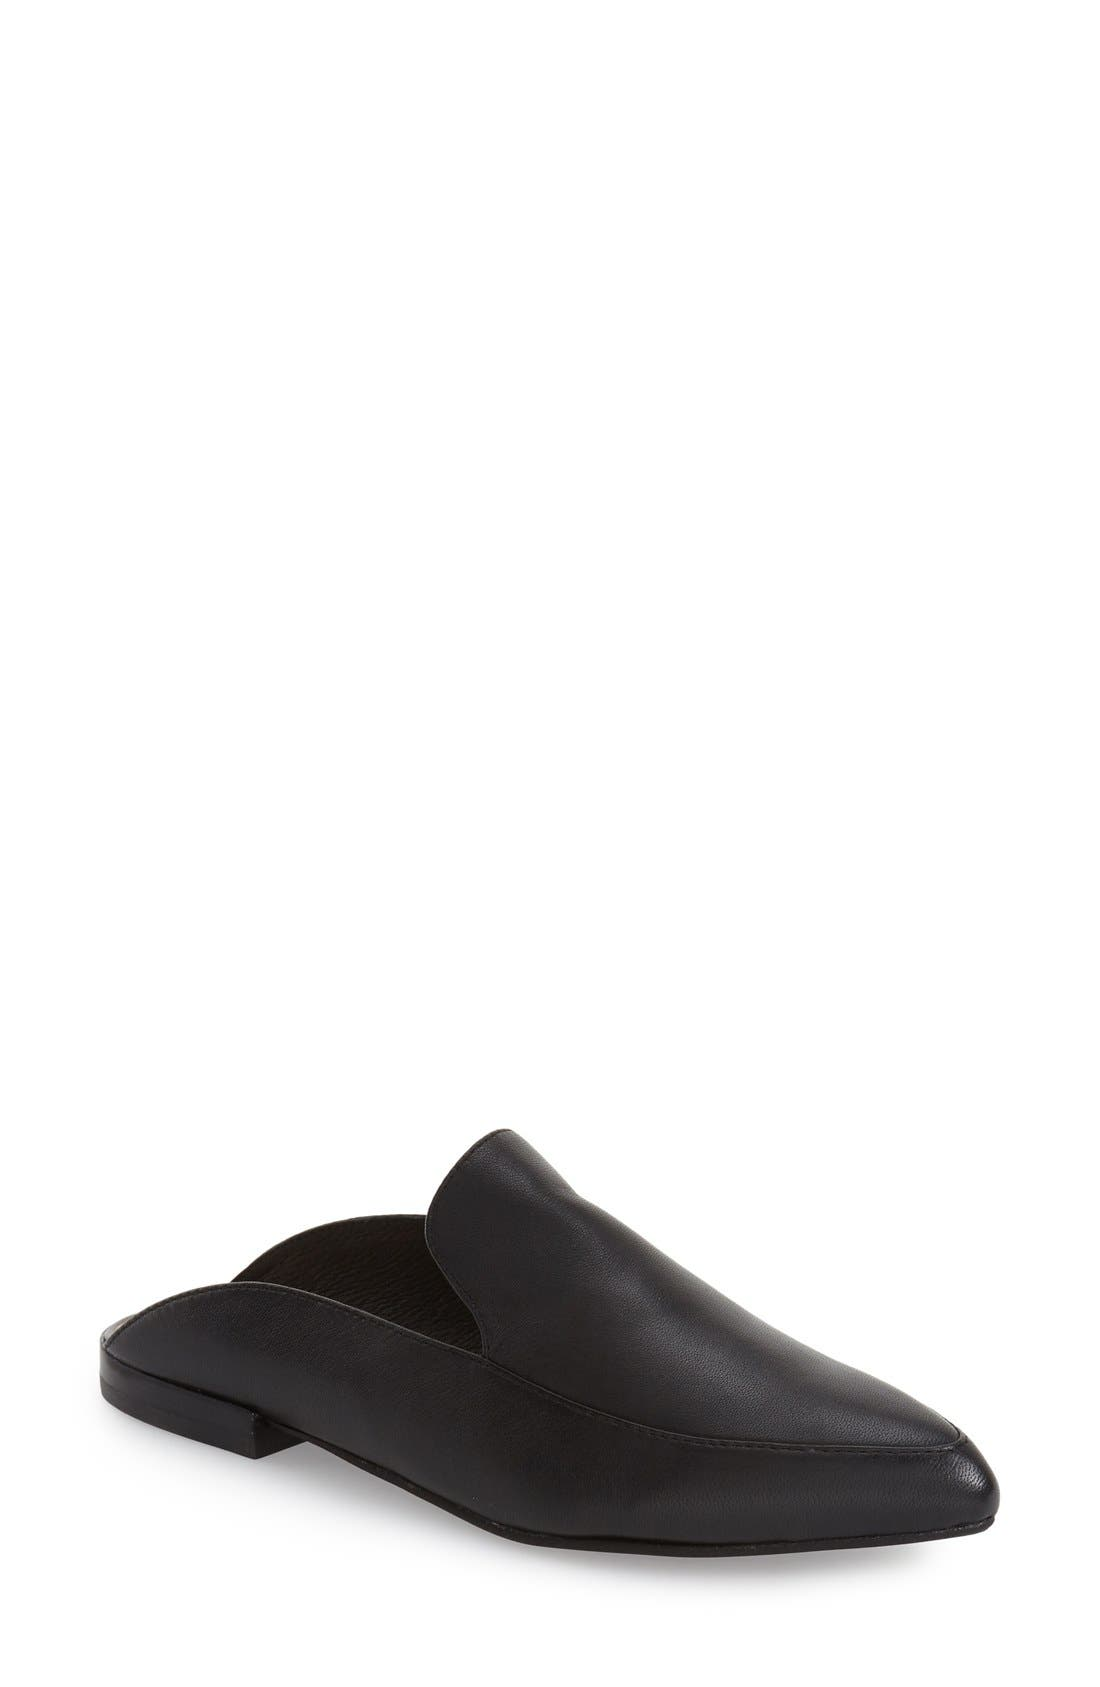 'Capri' Mule,                         Main,                         color, BLACK LEATHER